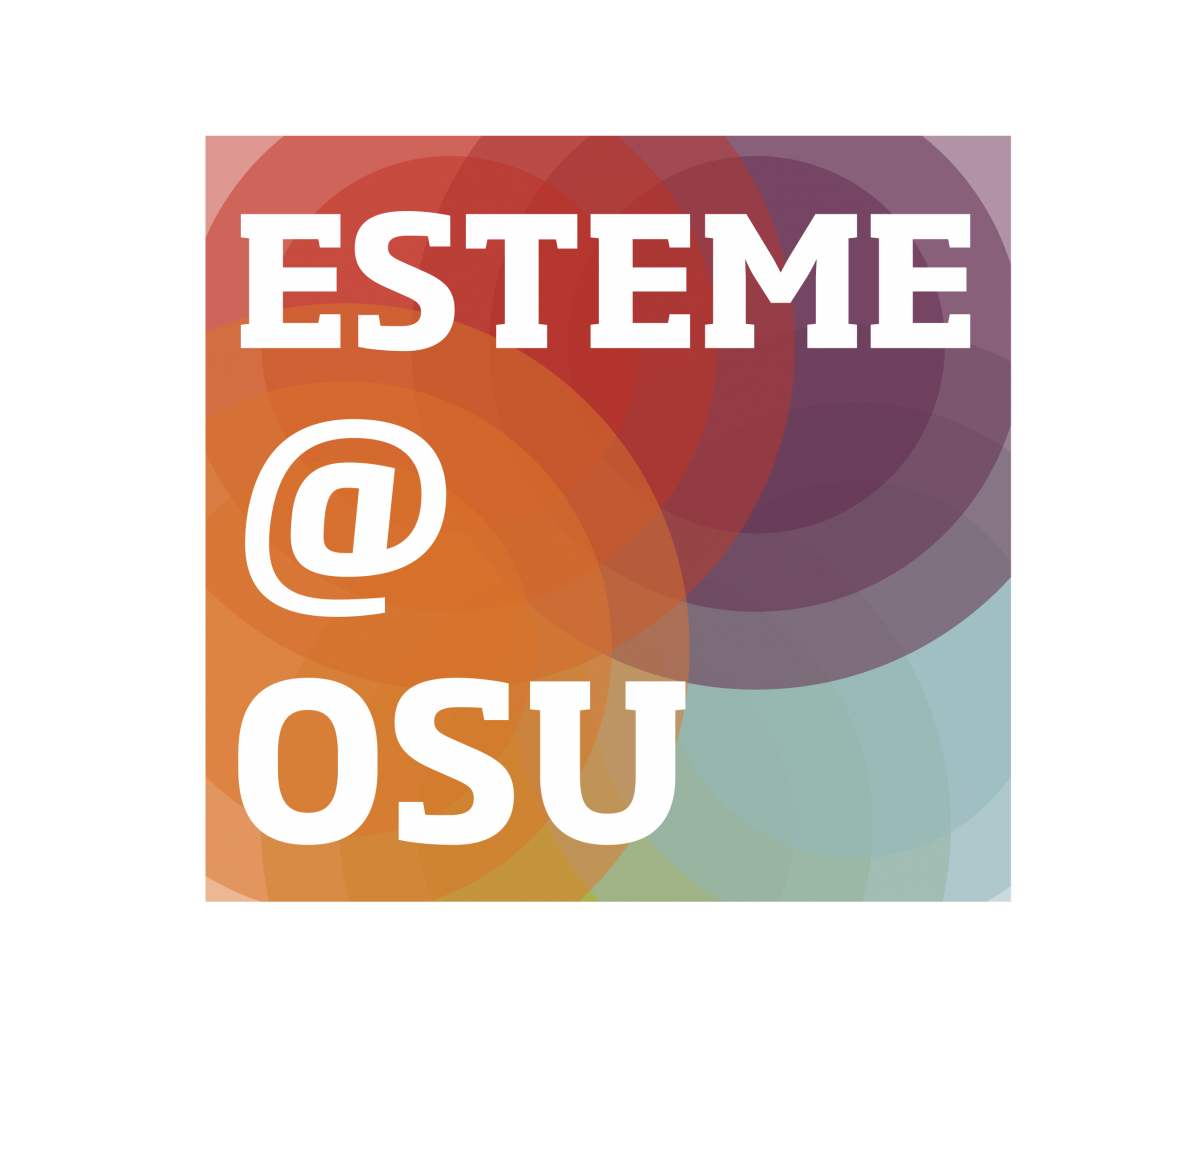 ESTEME at OSU